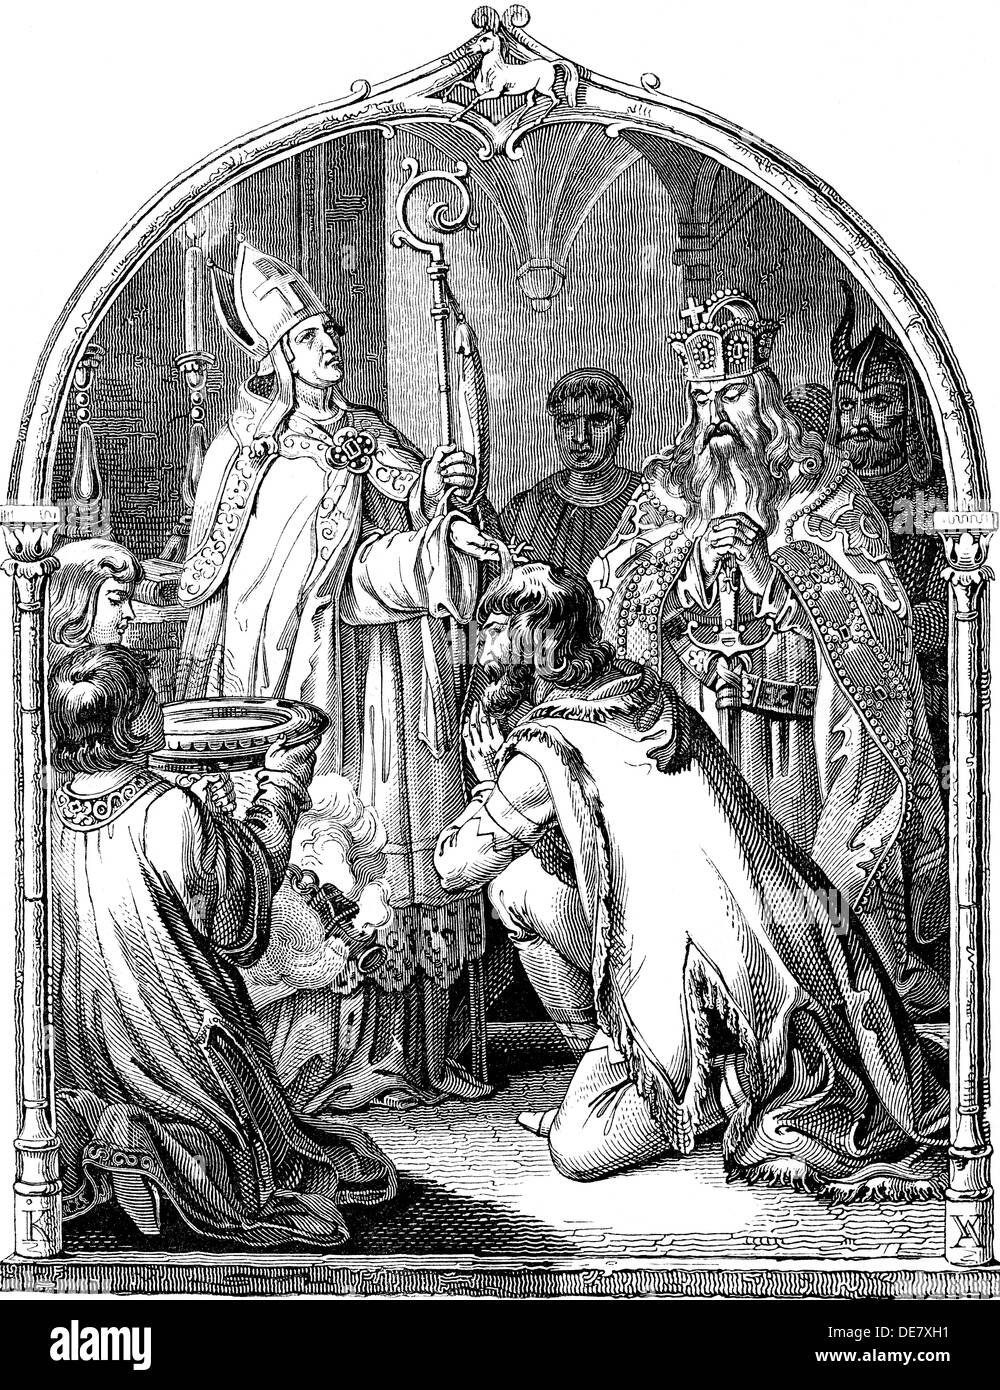 charlemagne and the saxon war Upon his return from italy in 775, charlemagne opened a war of conquest against the saxons his chief opponent was the westphalian chieftain widukind who, in 778, raided the east bank of the rhine up to coblenz, and, in 782, destroyed a frankish punitive force in saxony.